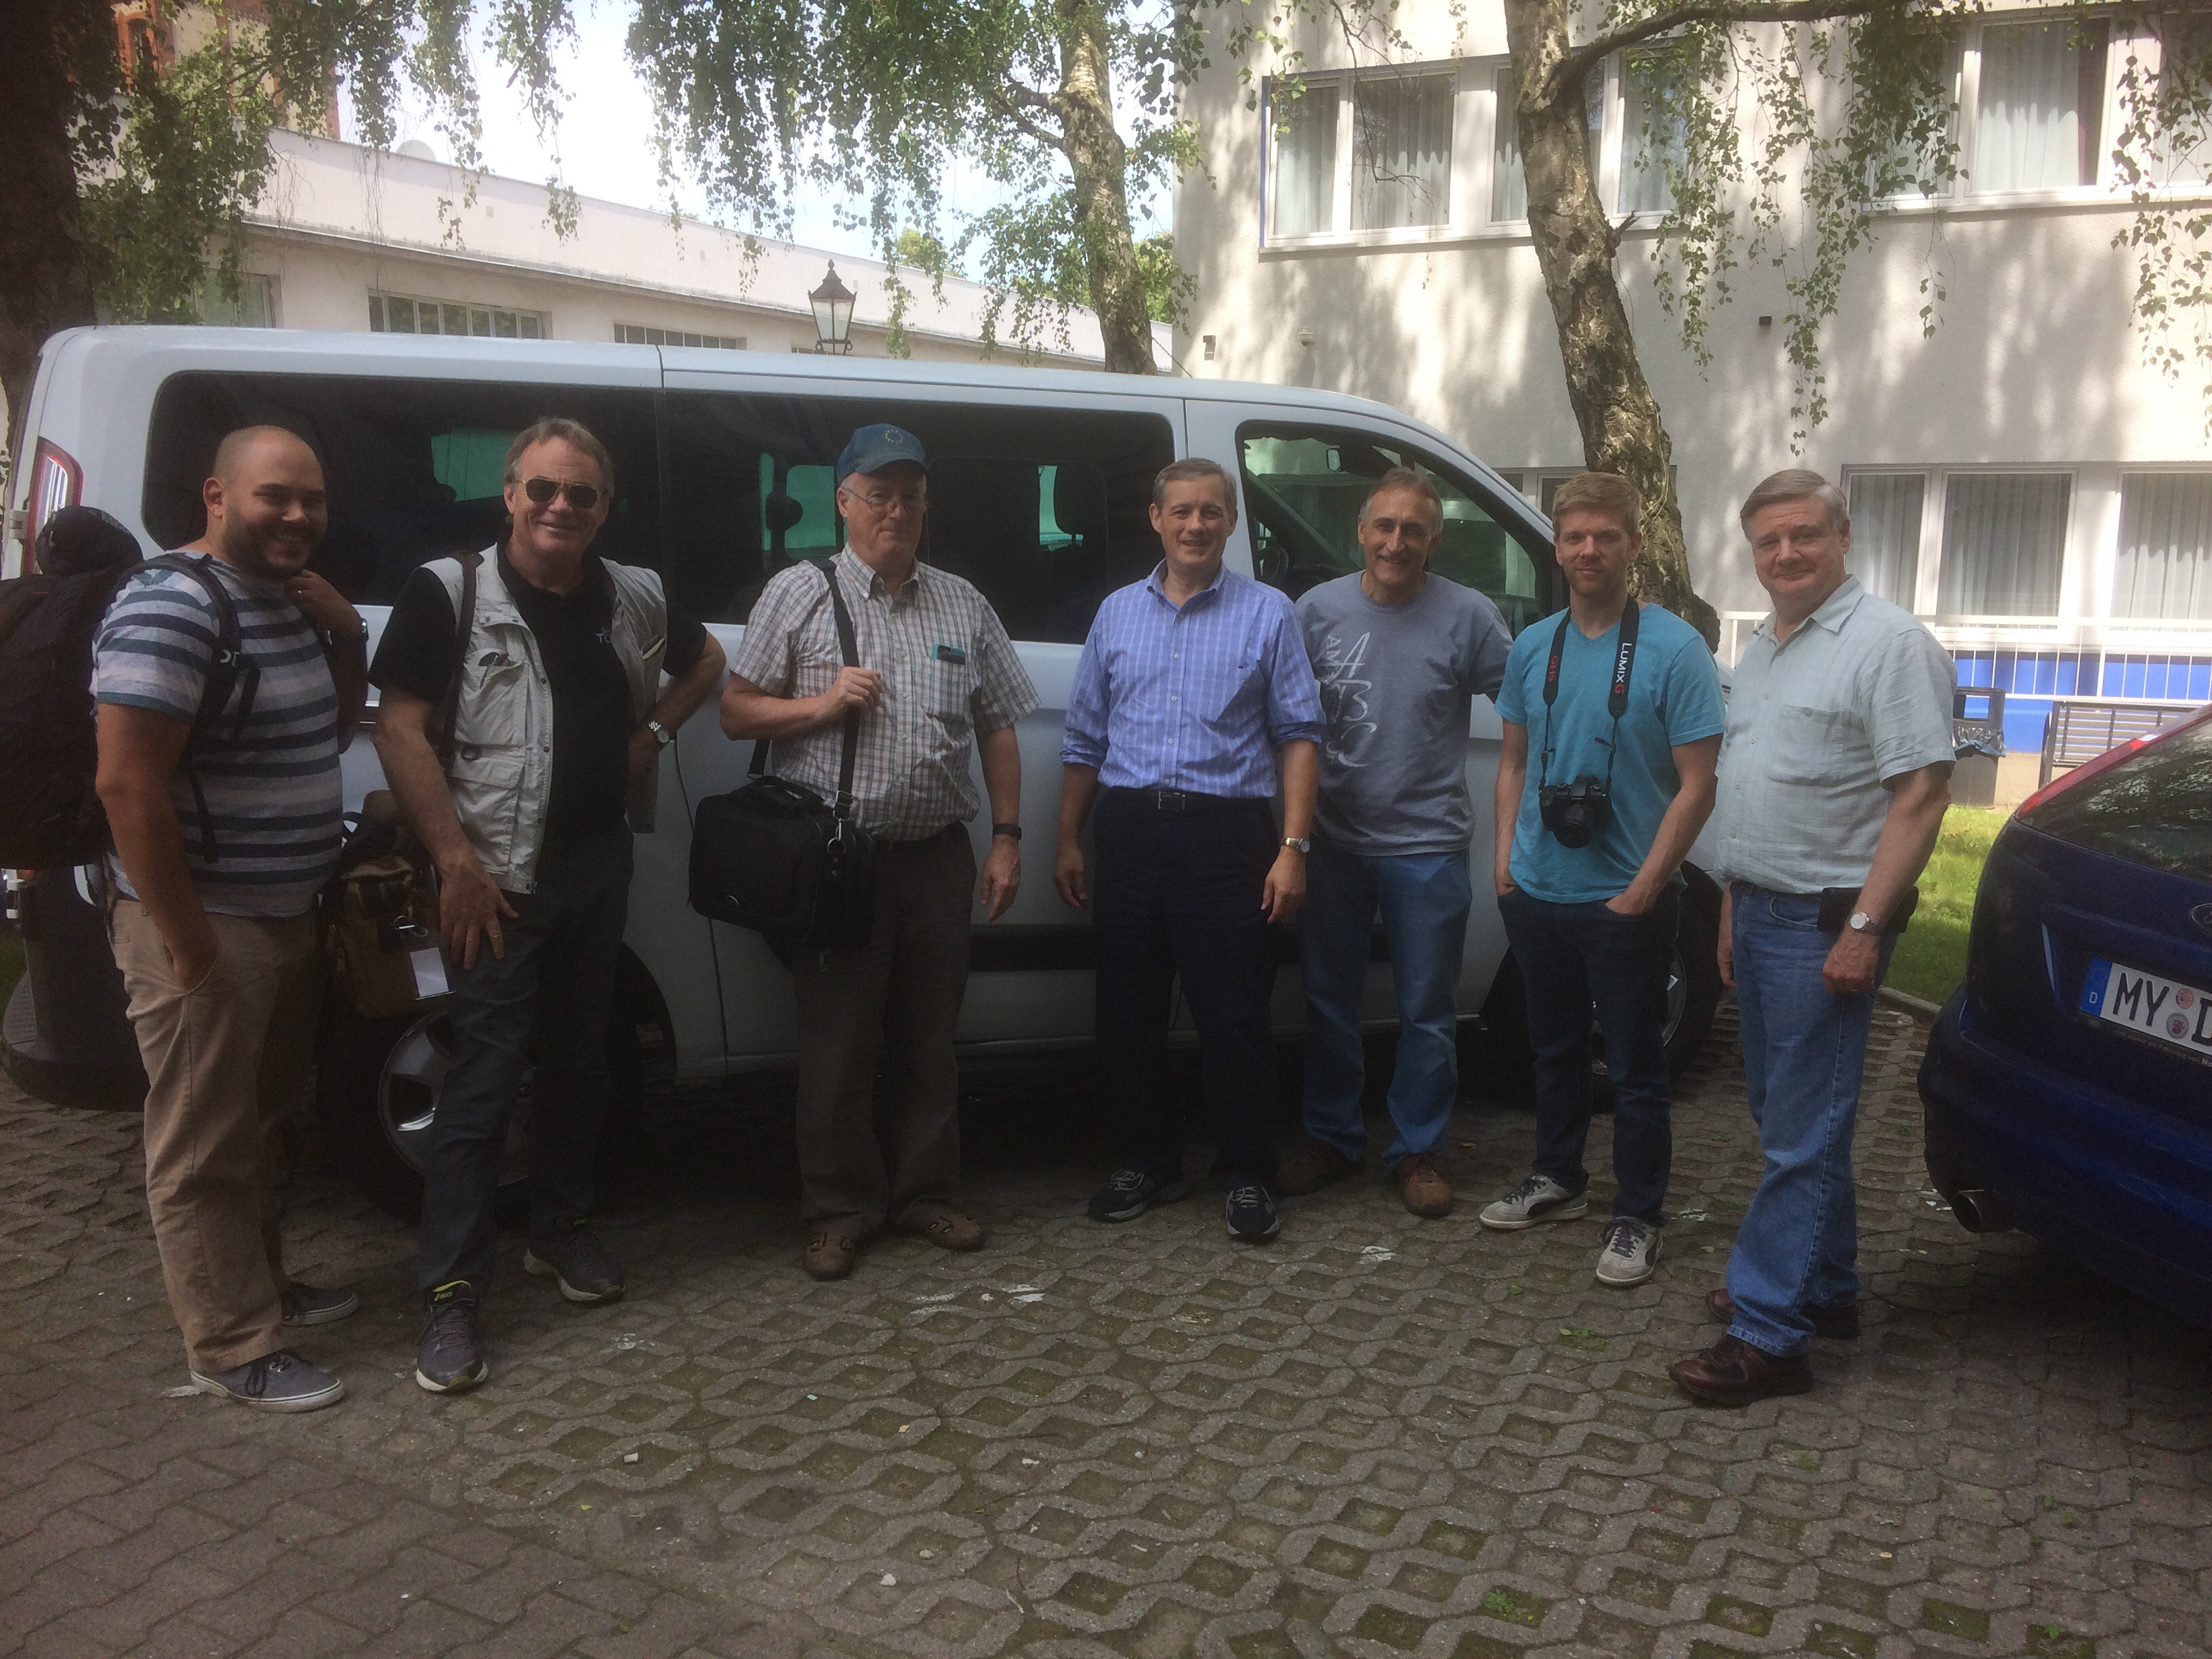 The Beyond Today team in Germany ready to record several episodes.